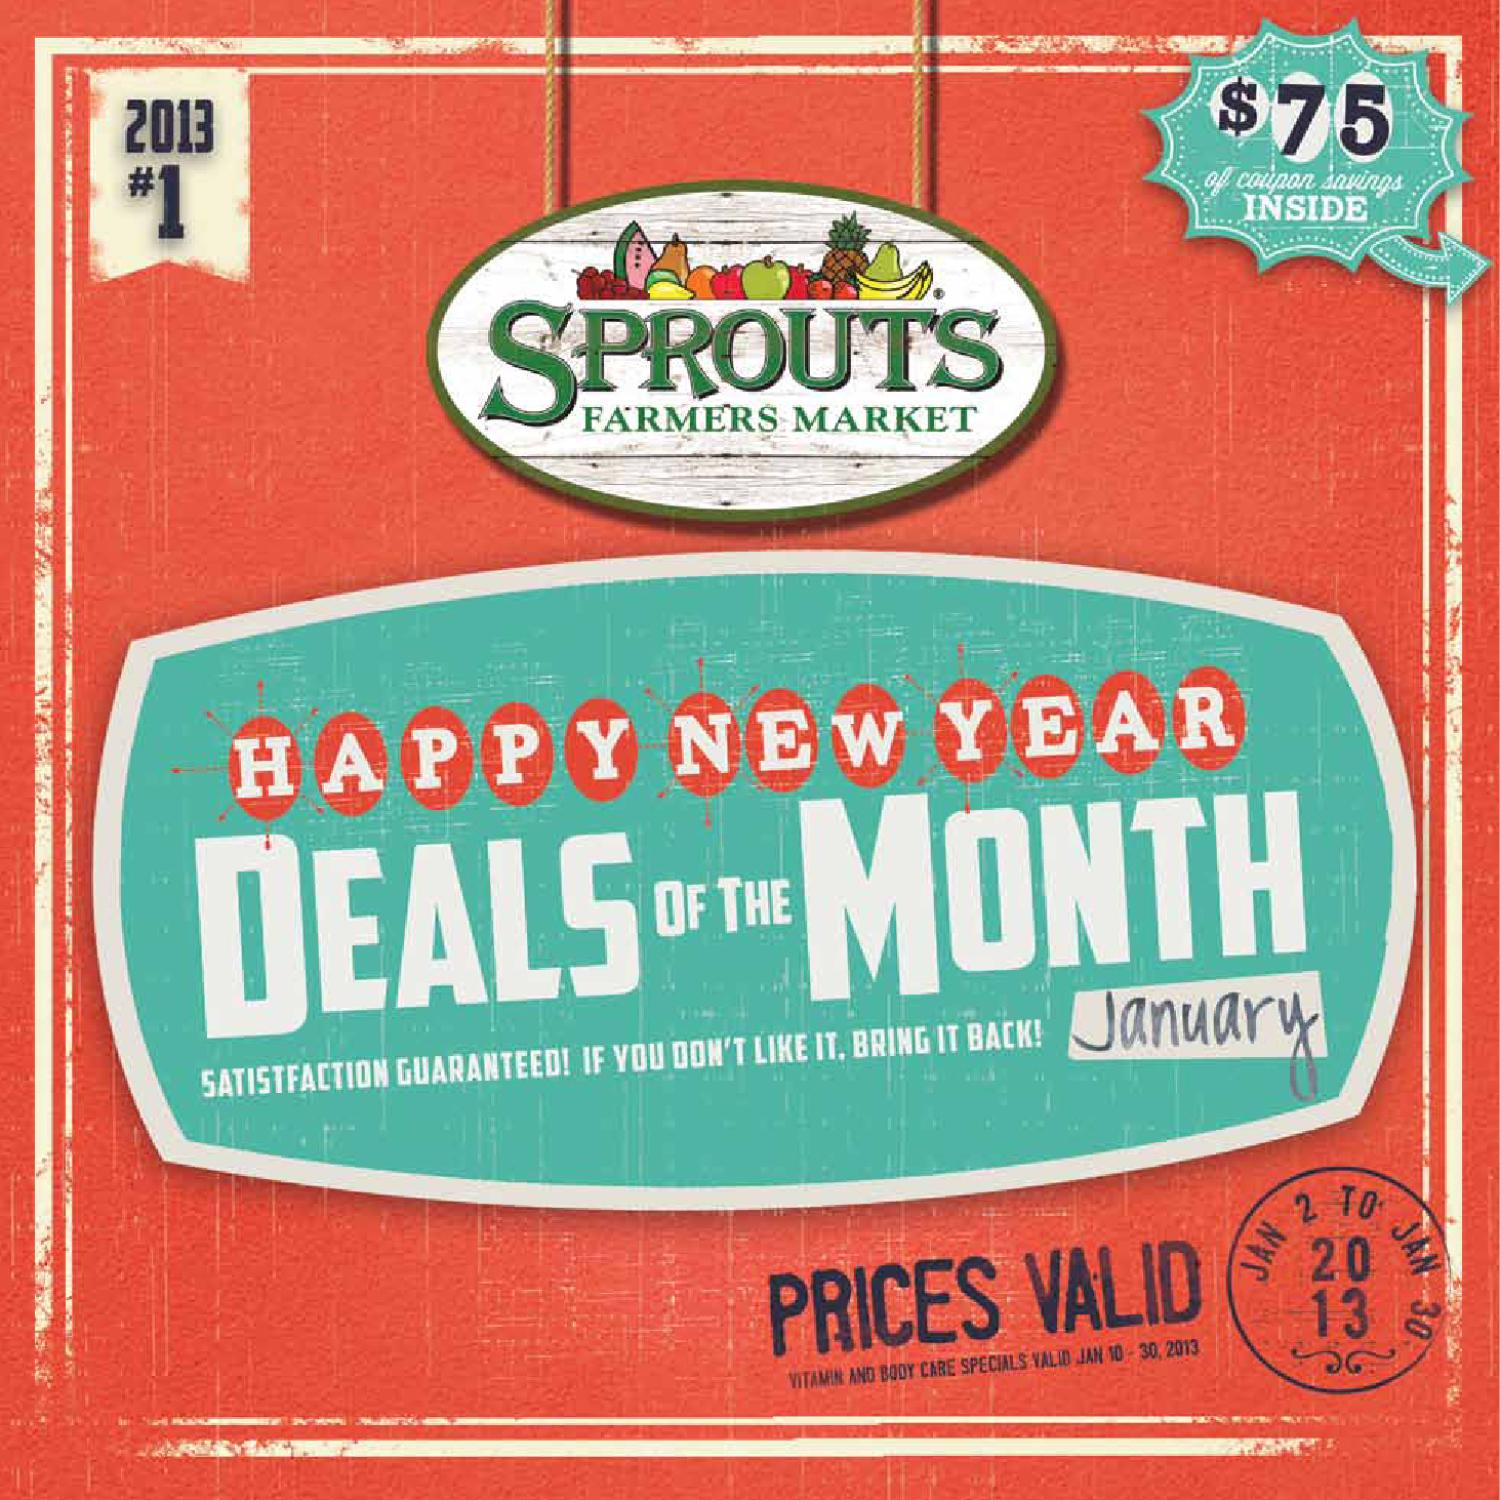 Sprouts January Deals of the Month by Sprouts Farmers Market